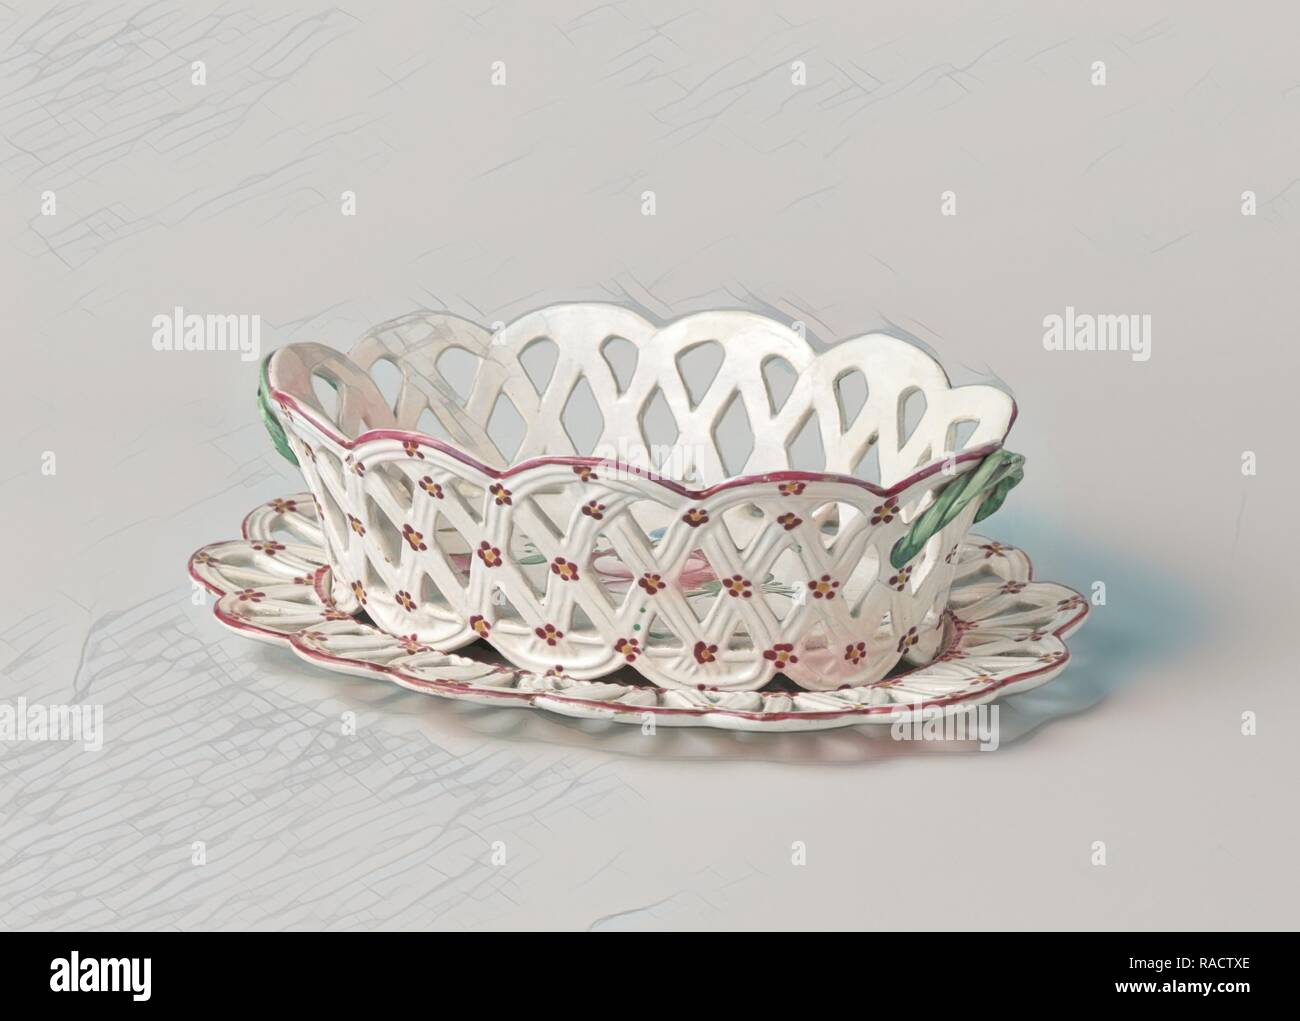 Fruit bowl with ears and openwork wall and rim, painted with flowers and insect. Reimagined by Gibon. Classic art reimagined - Stock Image